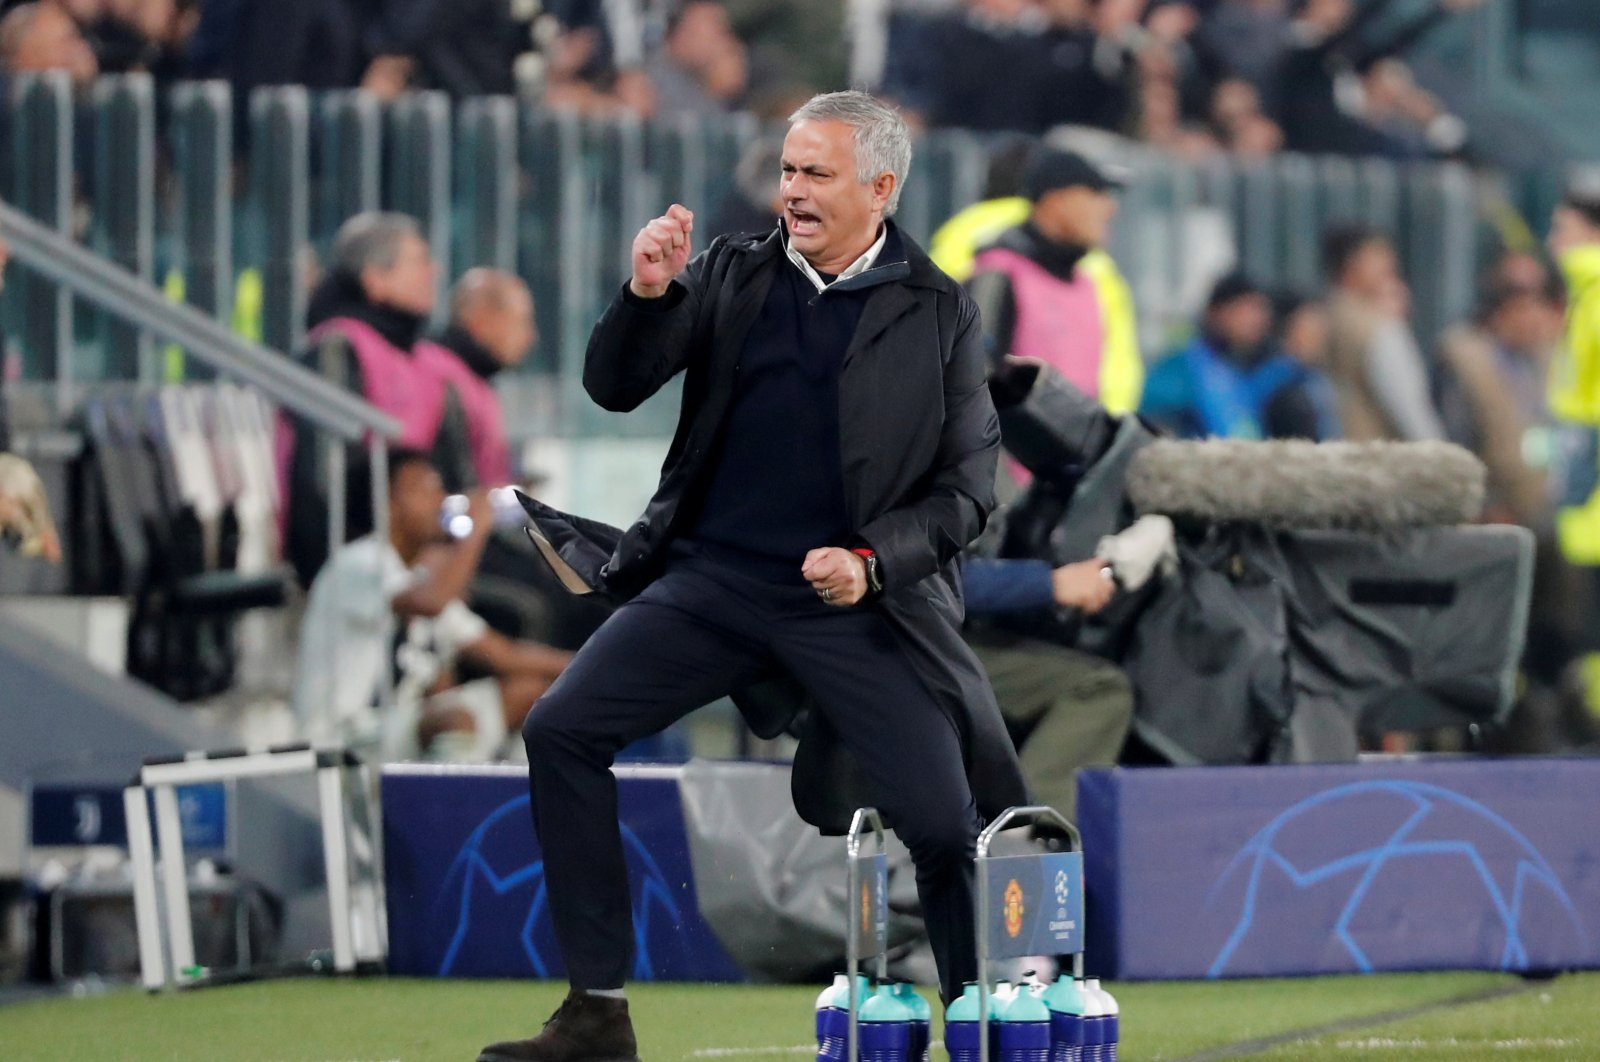 Then-Manchester United manager Jose Mourinho celebrates during a UEFA Champions League match against Juventus at the Allianz Stadium, Turin, Italy, Nov. 7, 2018. (Reuters Photo)